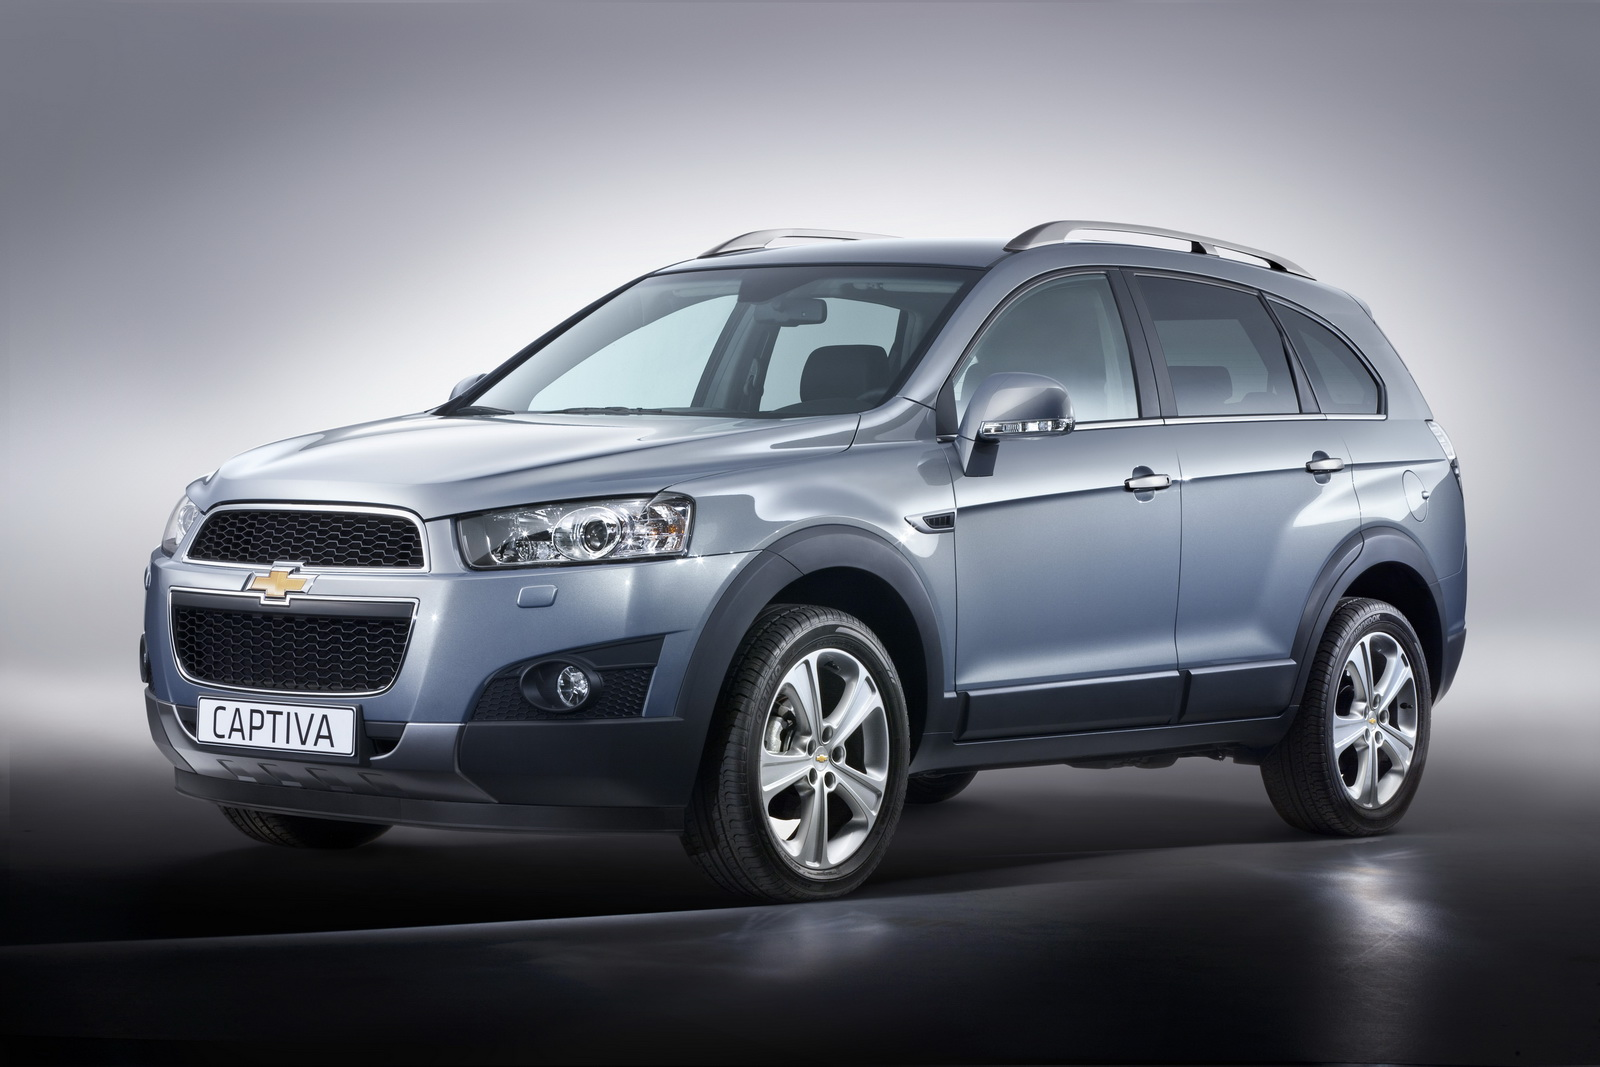 Chevrolet Captiva 2012 Desktop Backgrounds